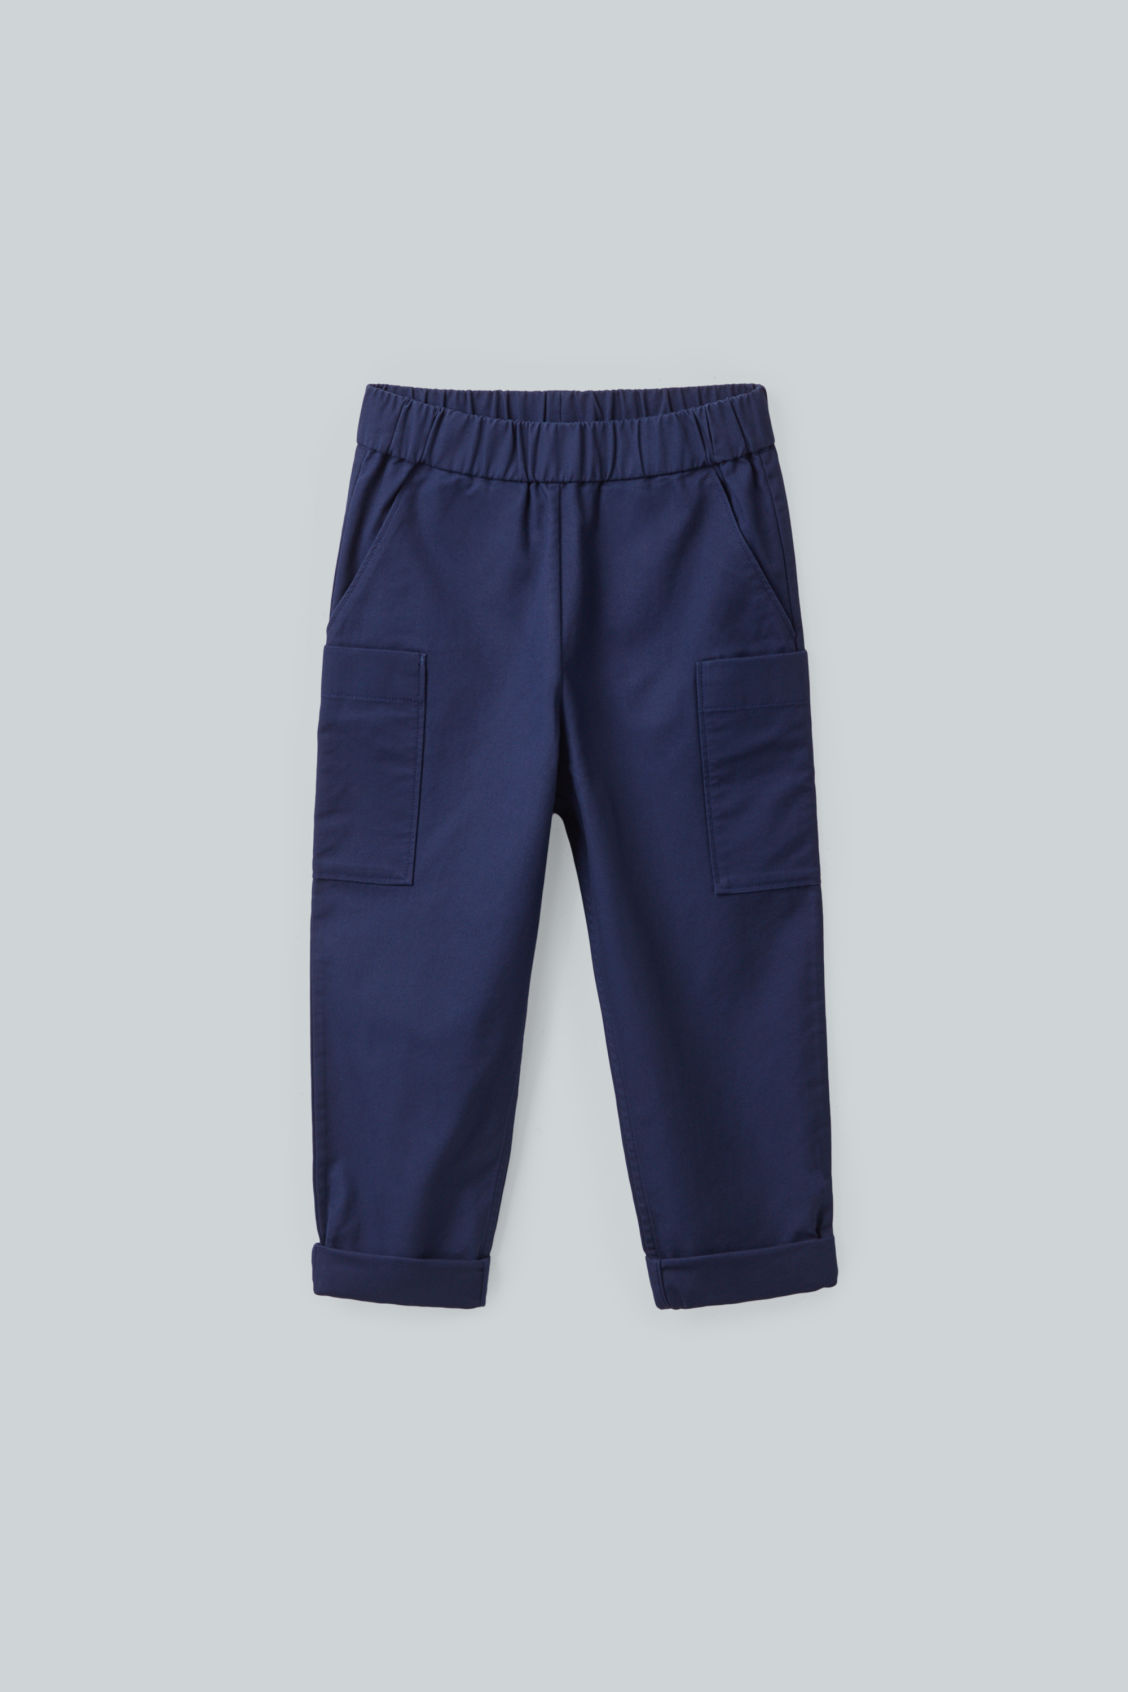 Cos Kids' Cotton Trousers With Patch Pockets In Blue